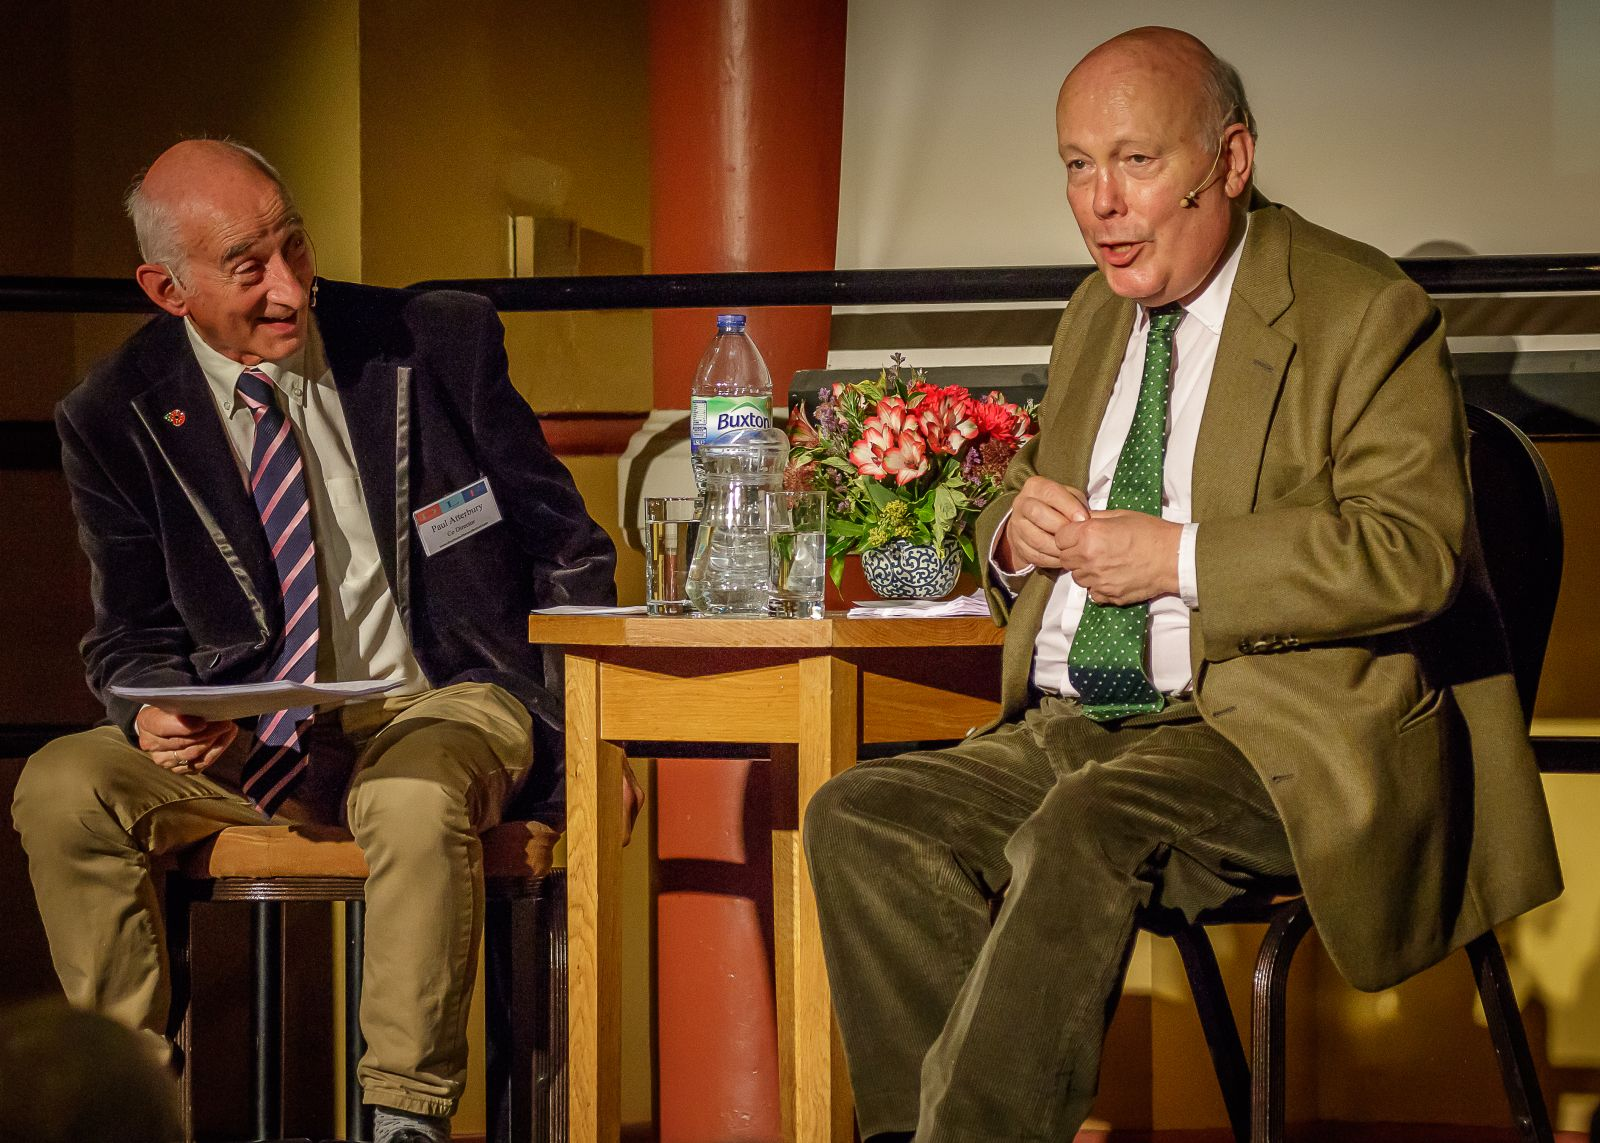 Julian Fellowes picks his Desert Island Books with Paul Atterbury